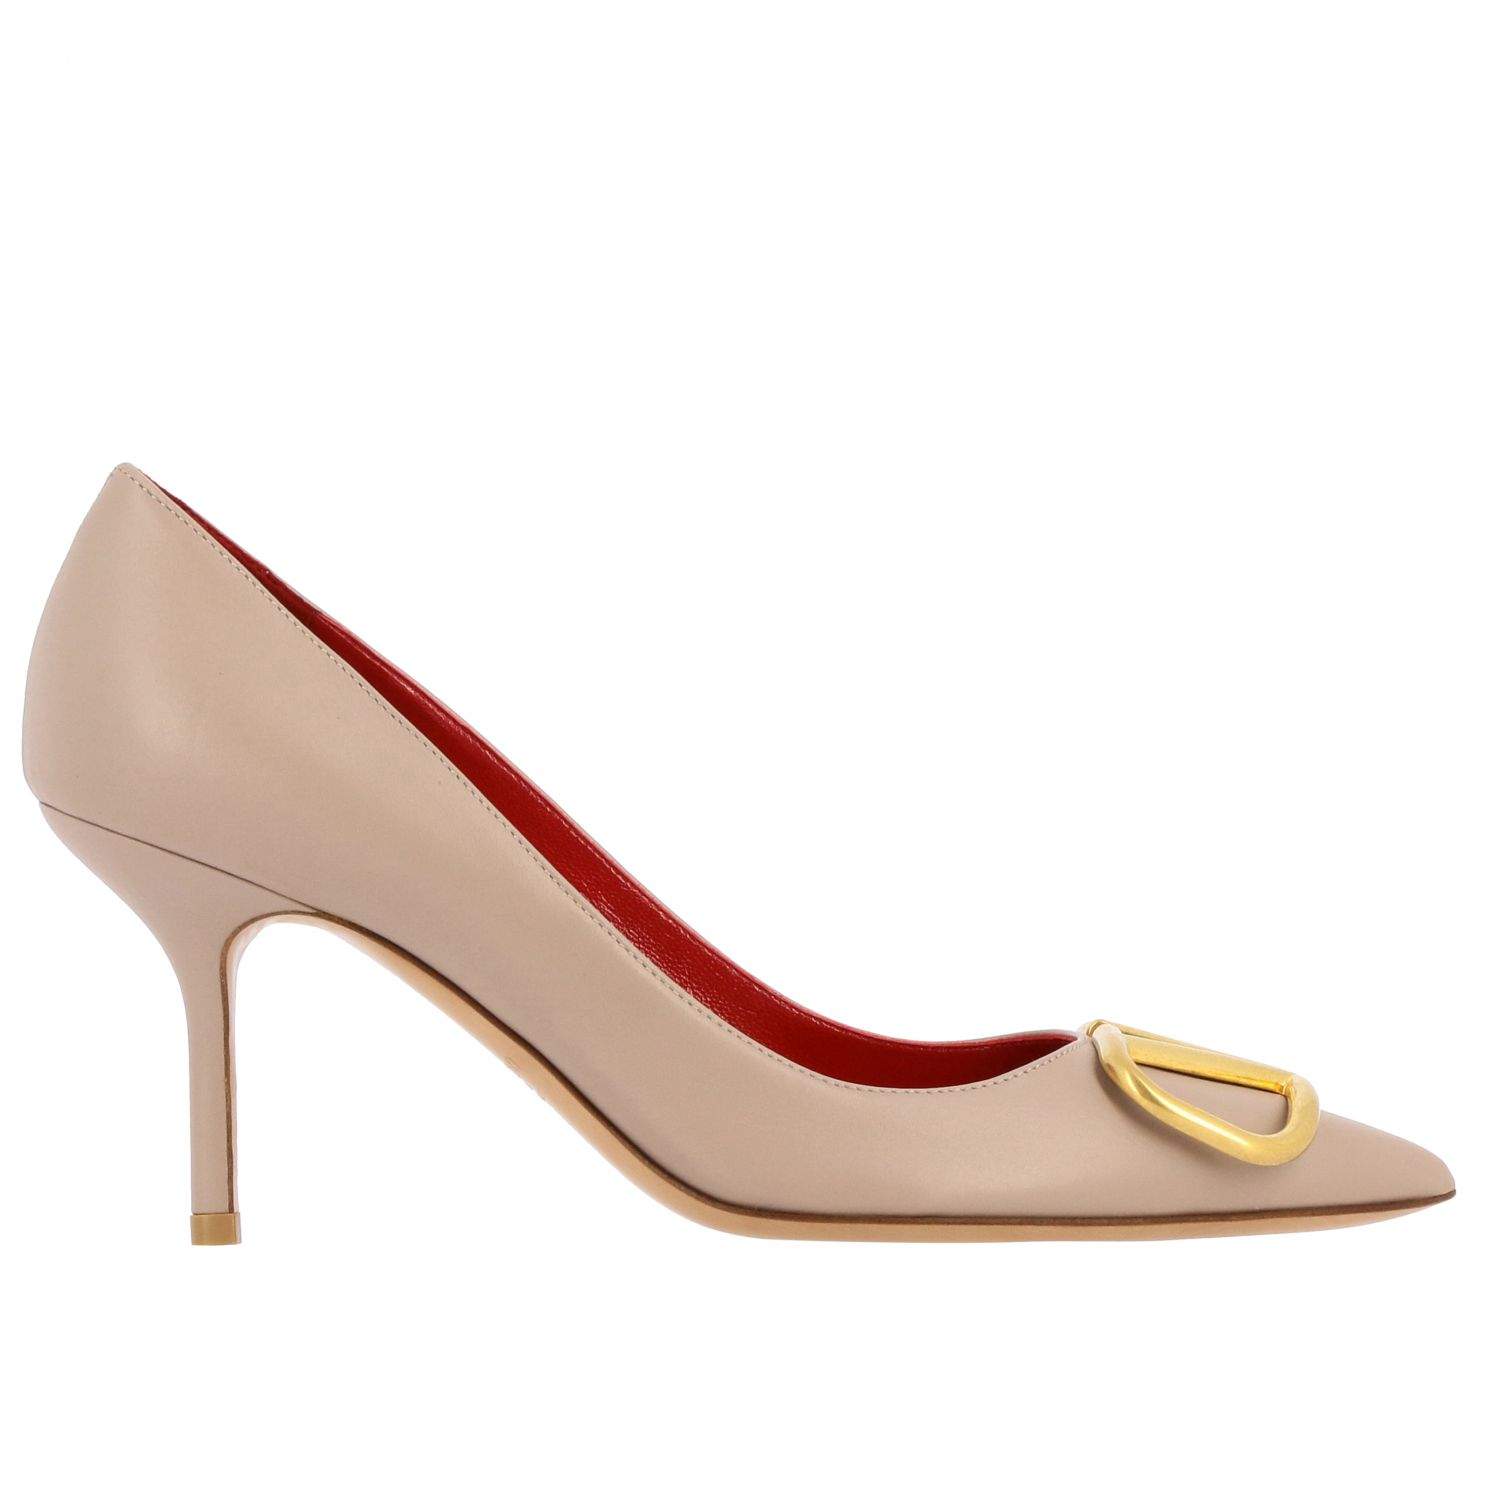 Pumps Valentino Garavani: Shoes women Valentino Garavani blush pink 1